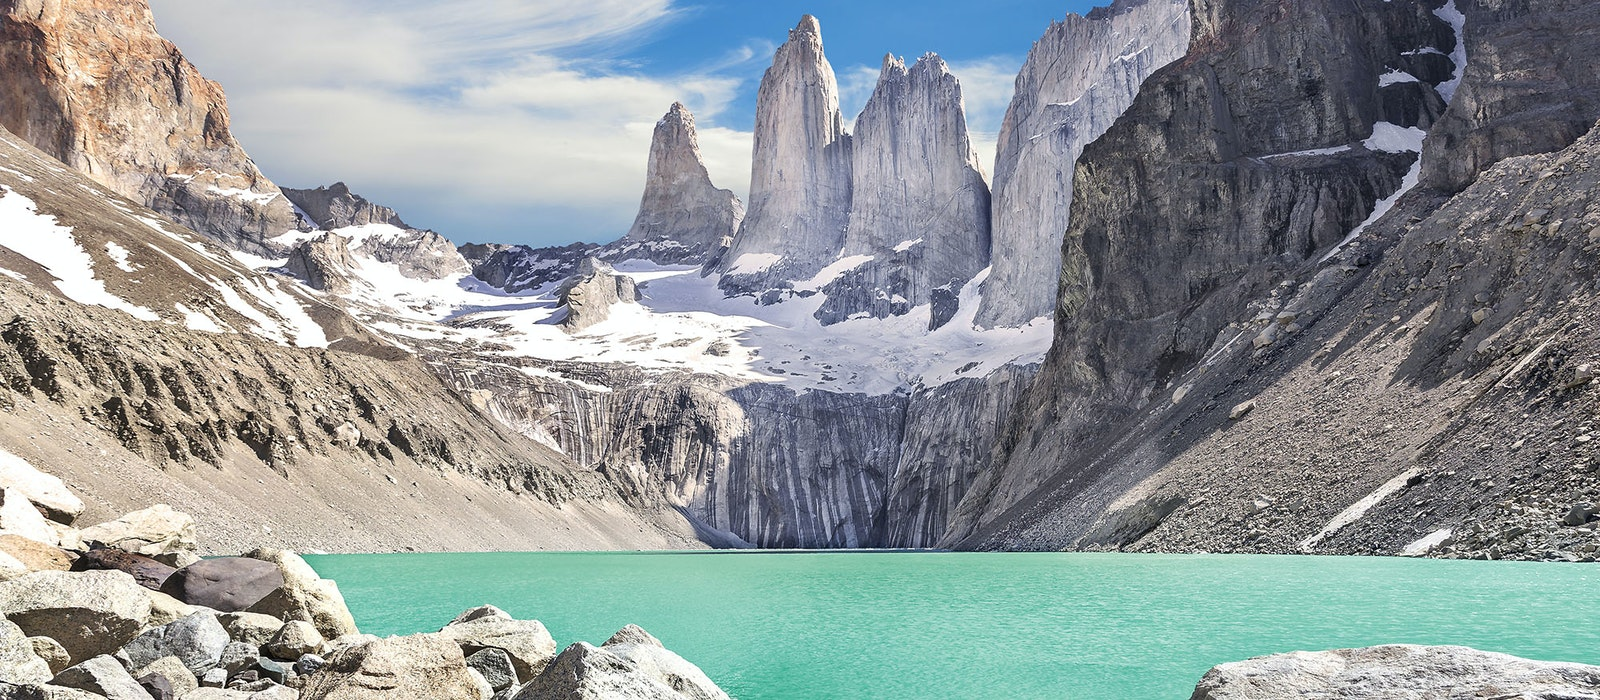 The Route of Parks will pass through Chile's famed Torres del Paine National Park.